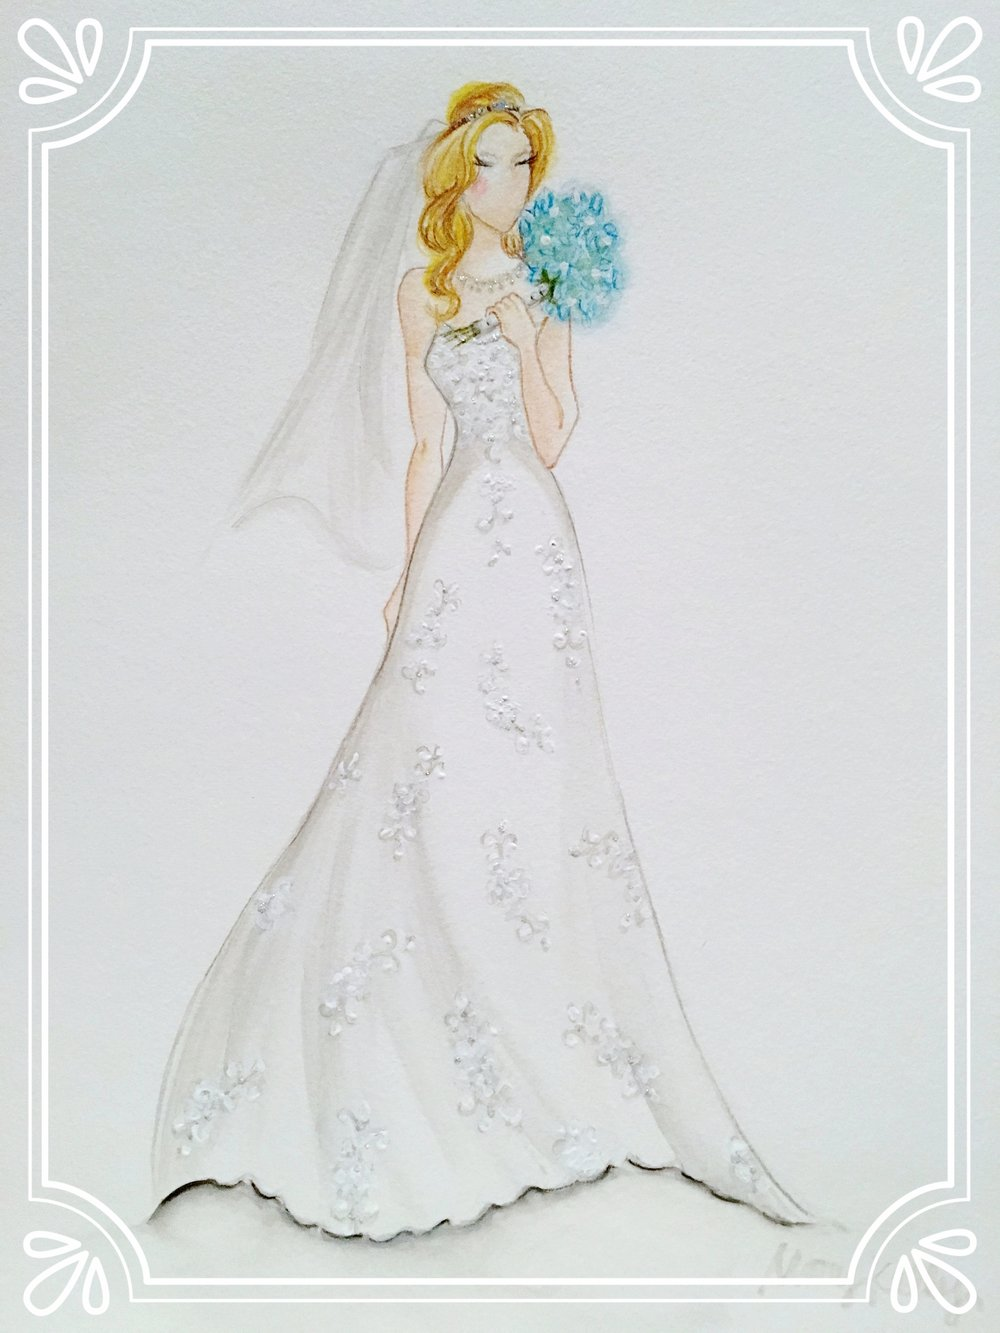 NEW! mary's wedding gown, mary kelly designs © 2018